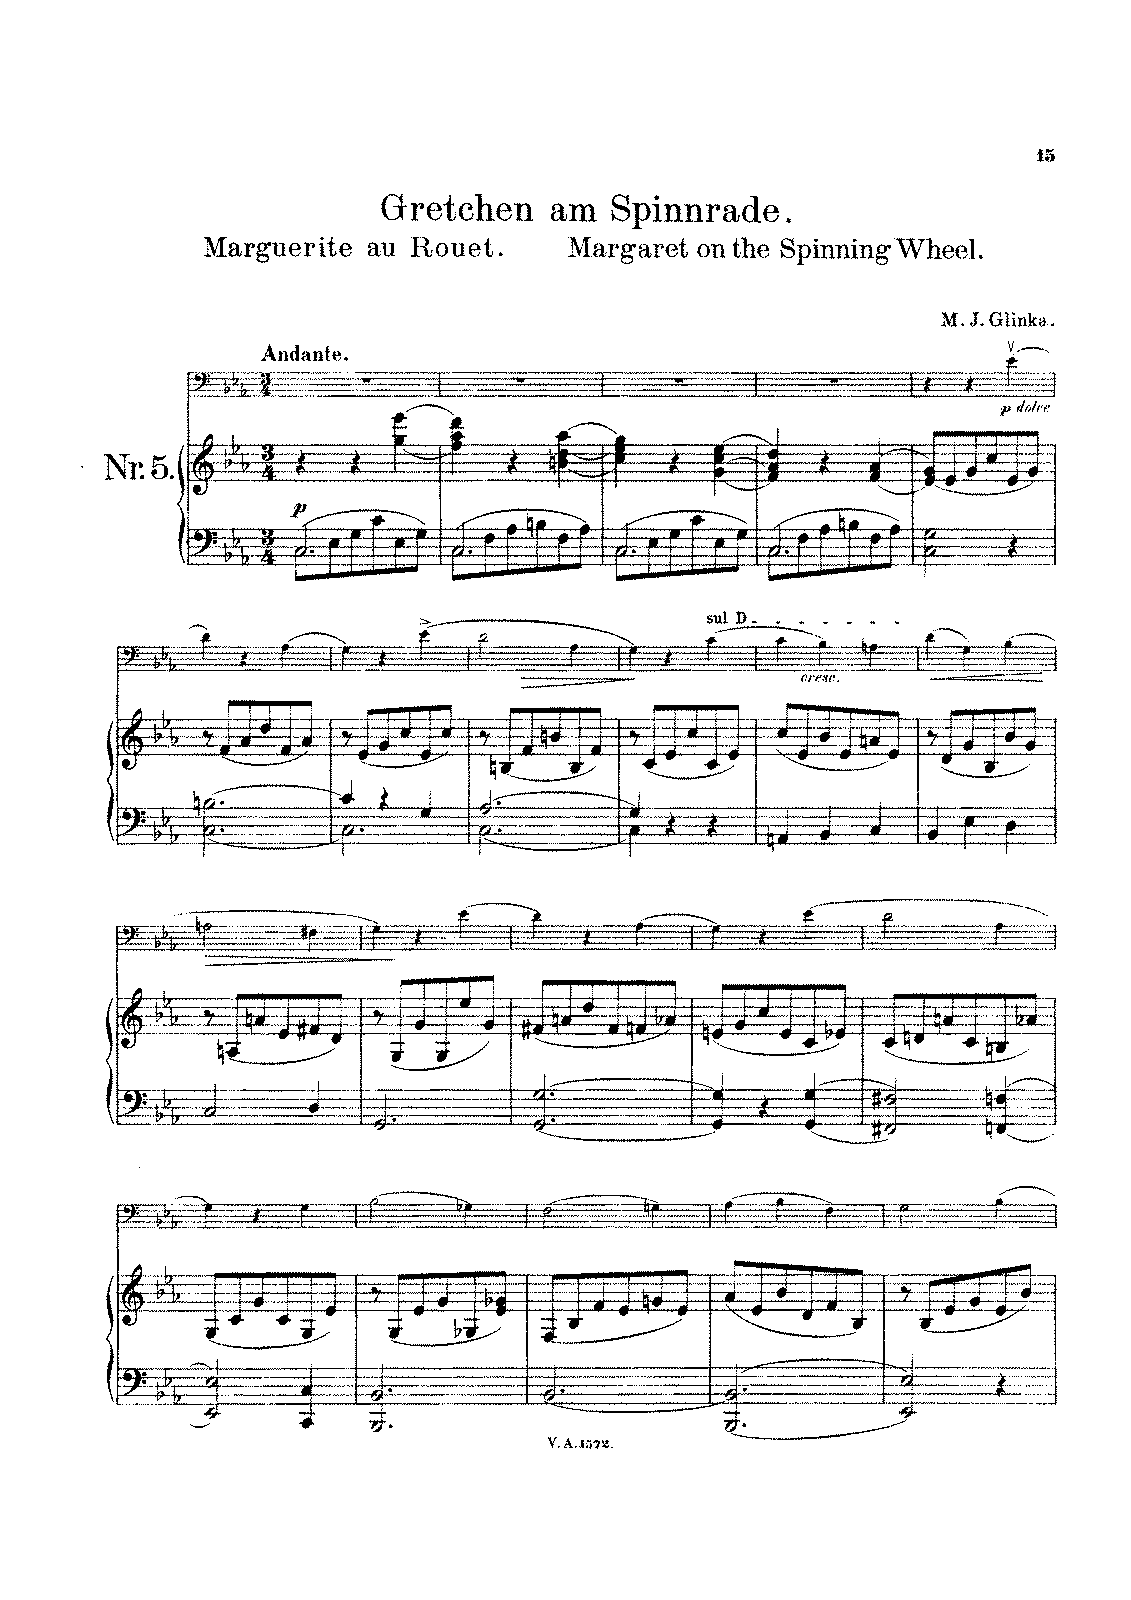 PMLP26581-Glinka - Margaret on the Spinning Wheel (Salter) for Cello and Piano score.pdf